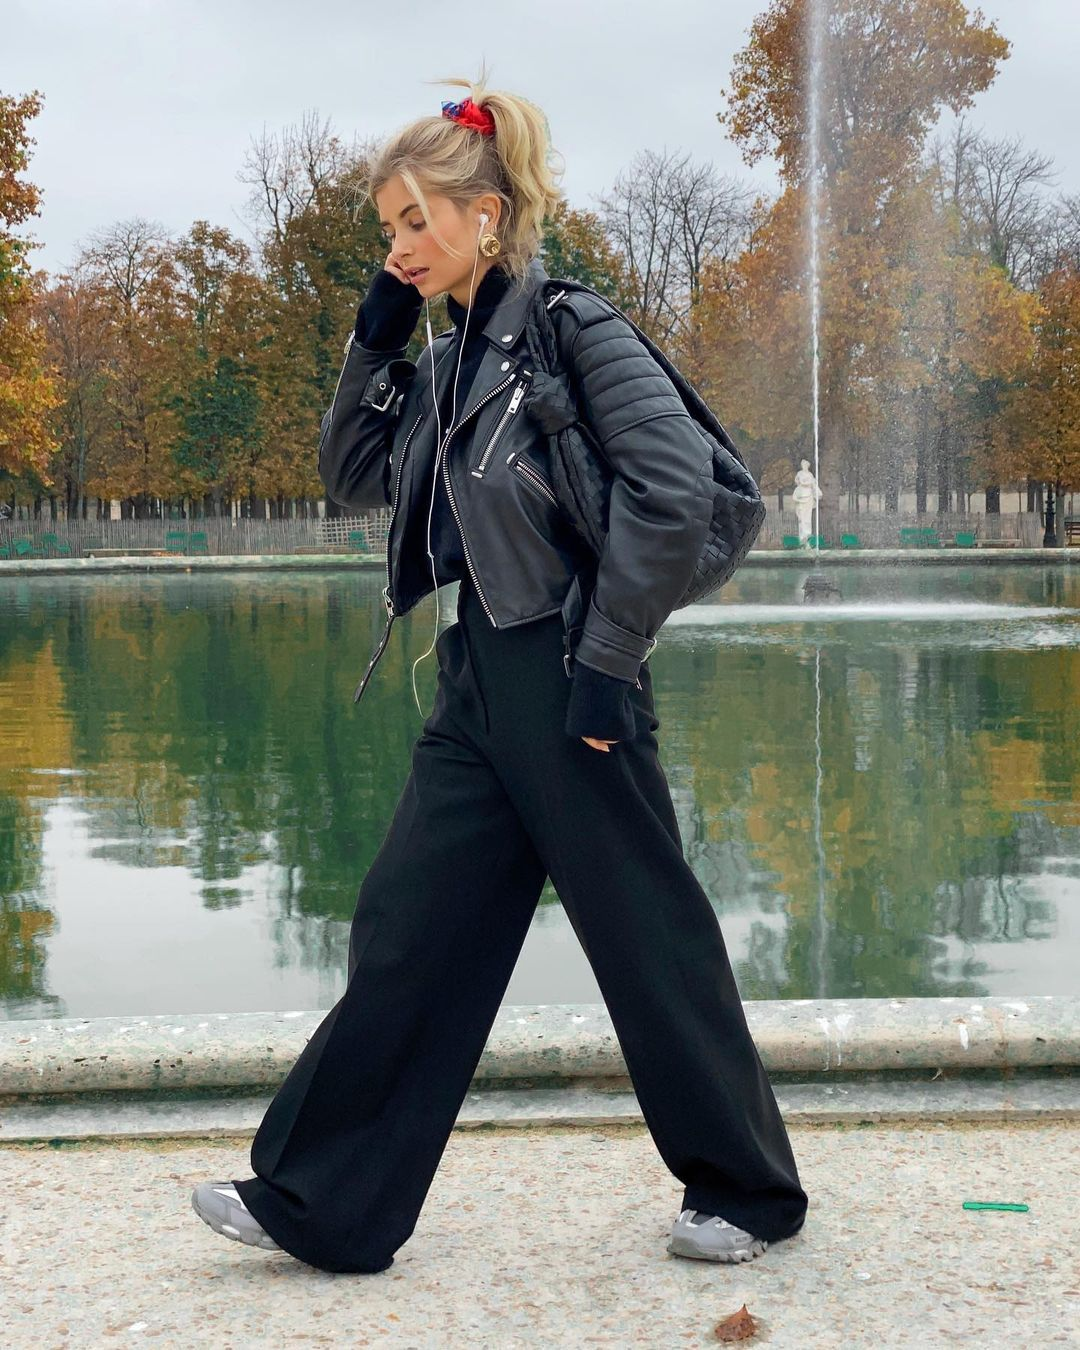 xenia-adonts-dad-pants-fall-outfit-instagram